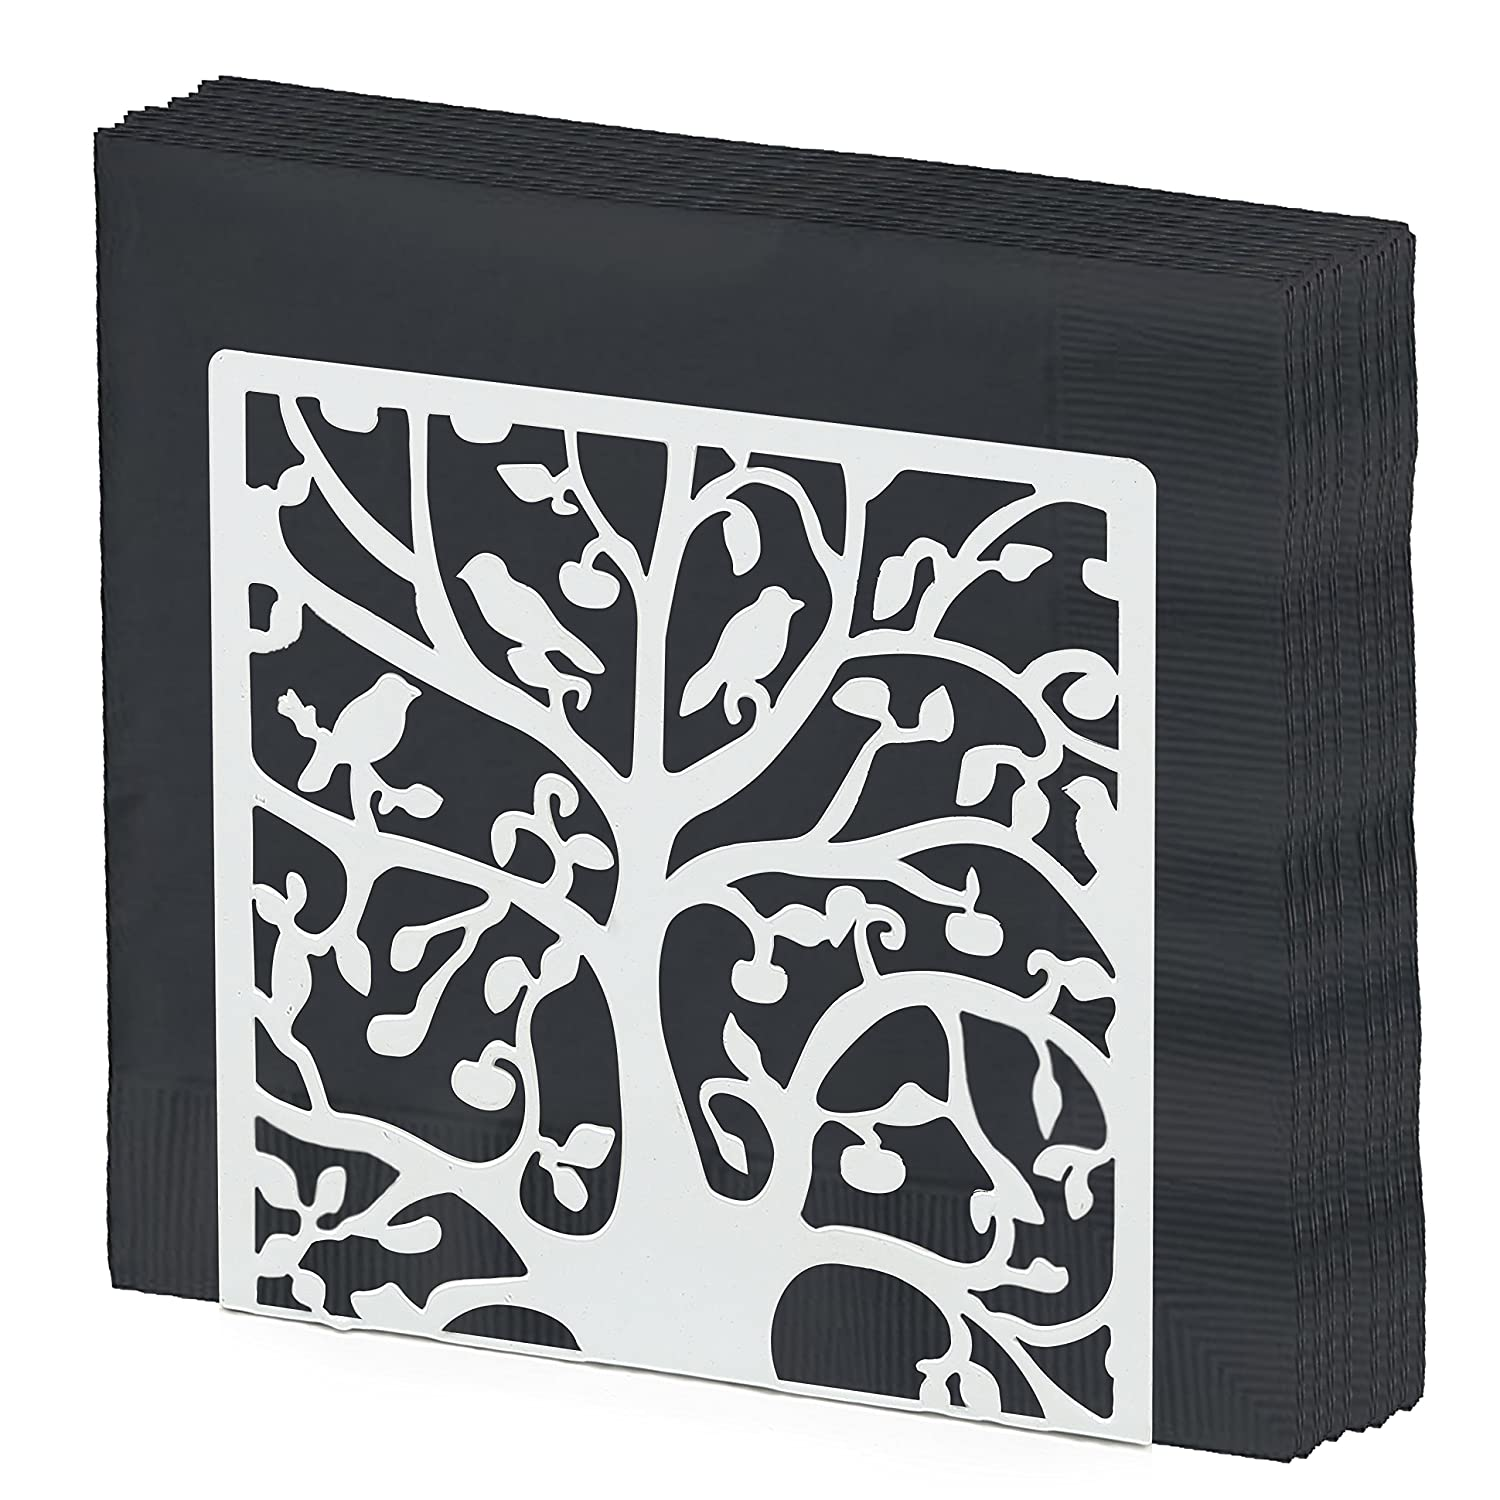 Black Metal Tree & Bird Design Tabletop Napkin Holder/Freestanding Tissue Dispenser MyGift SPOMHNK2182